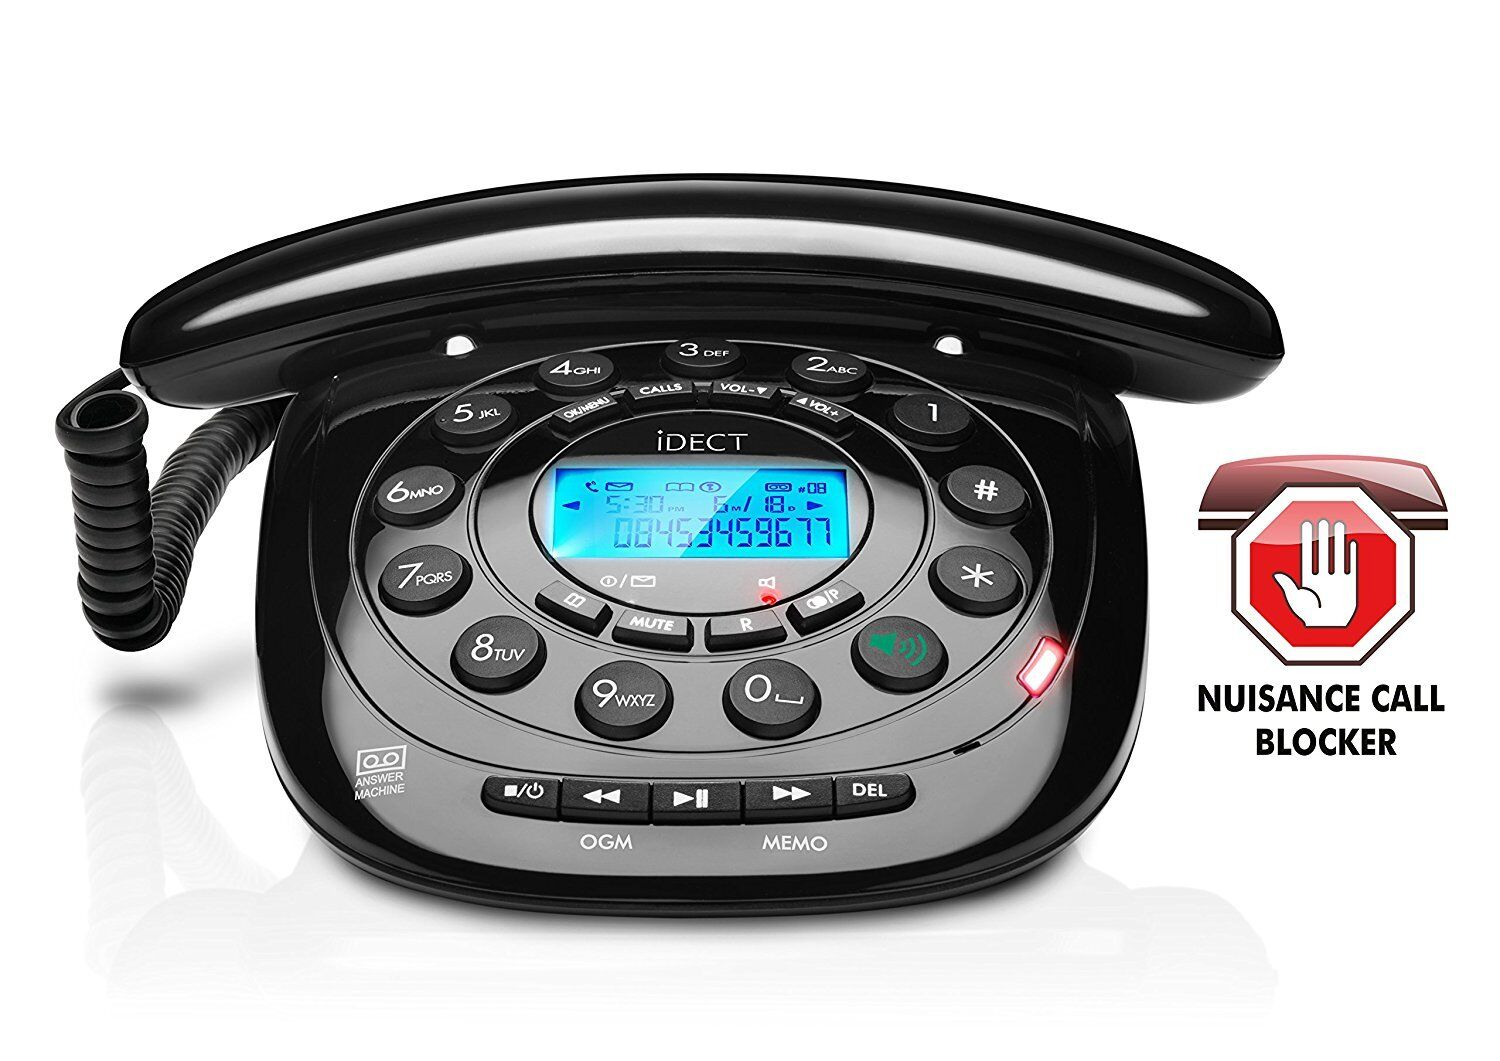 Details about iDECT Home Landline Dect Phone Telephone Call Blocking Answer  Machine Caller ID